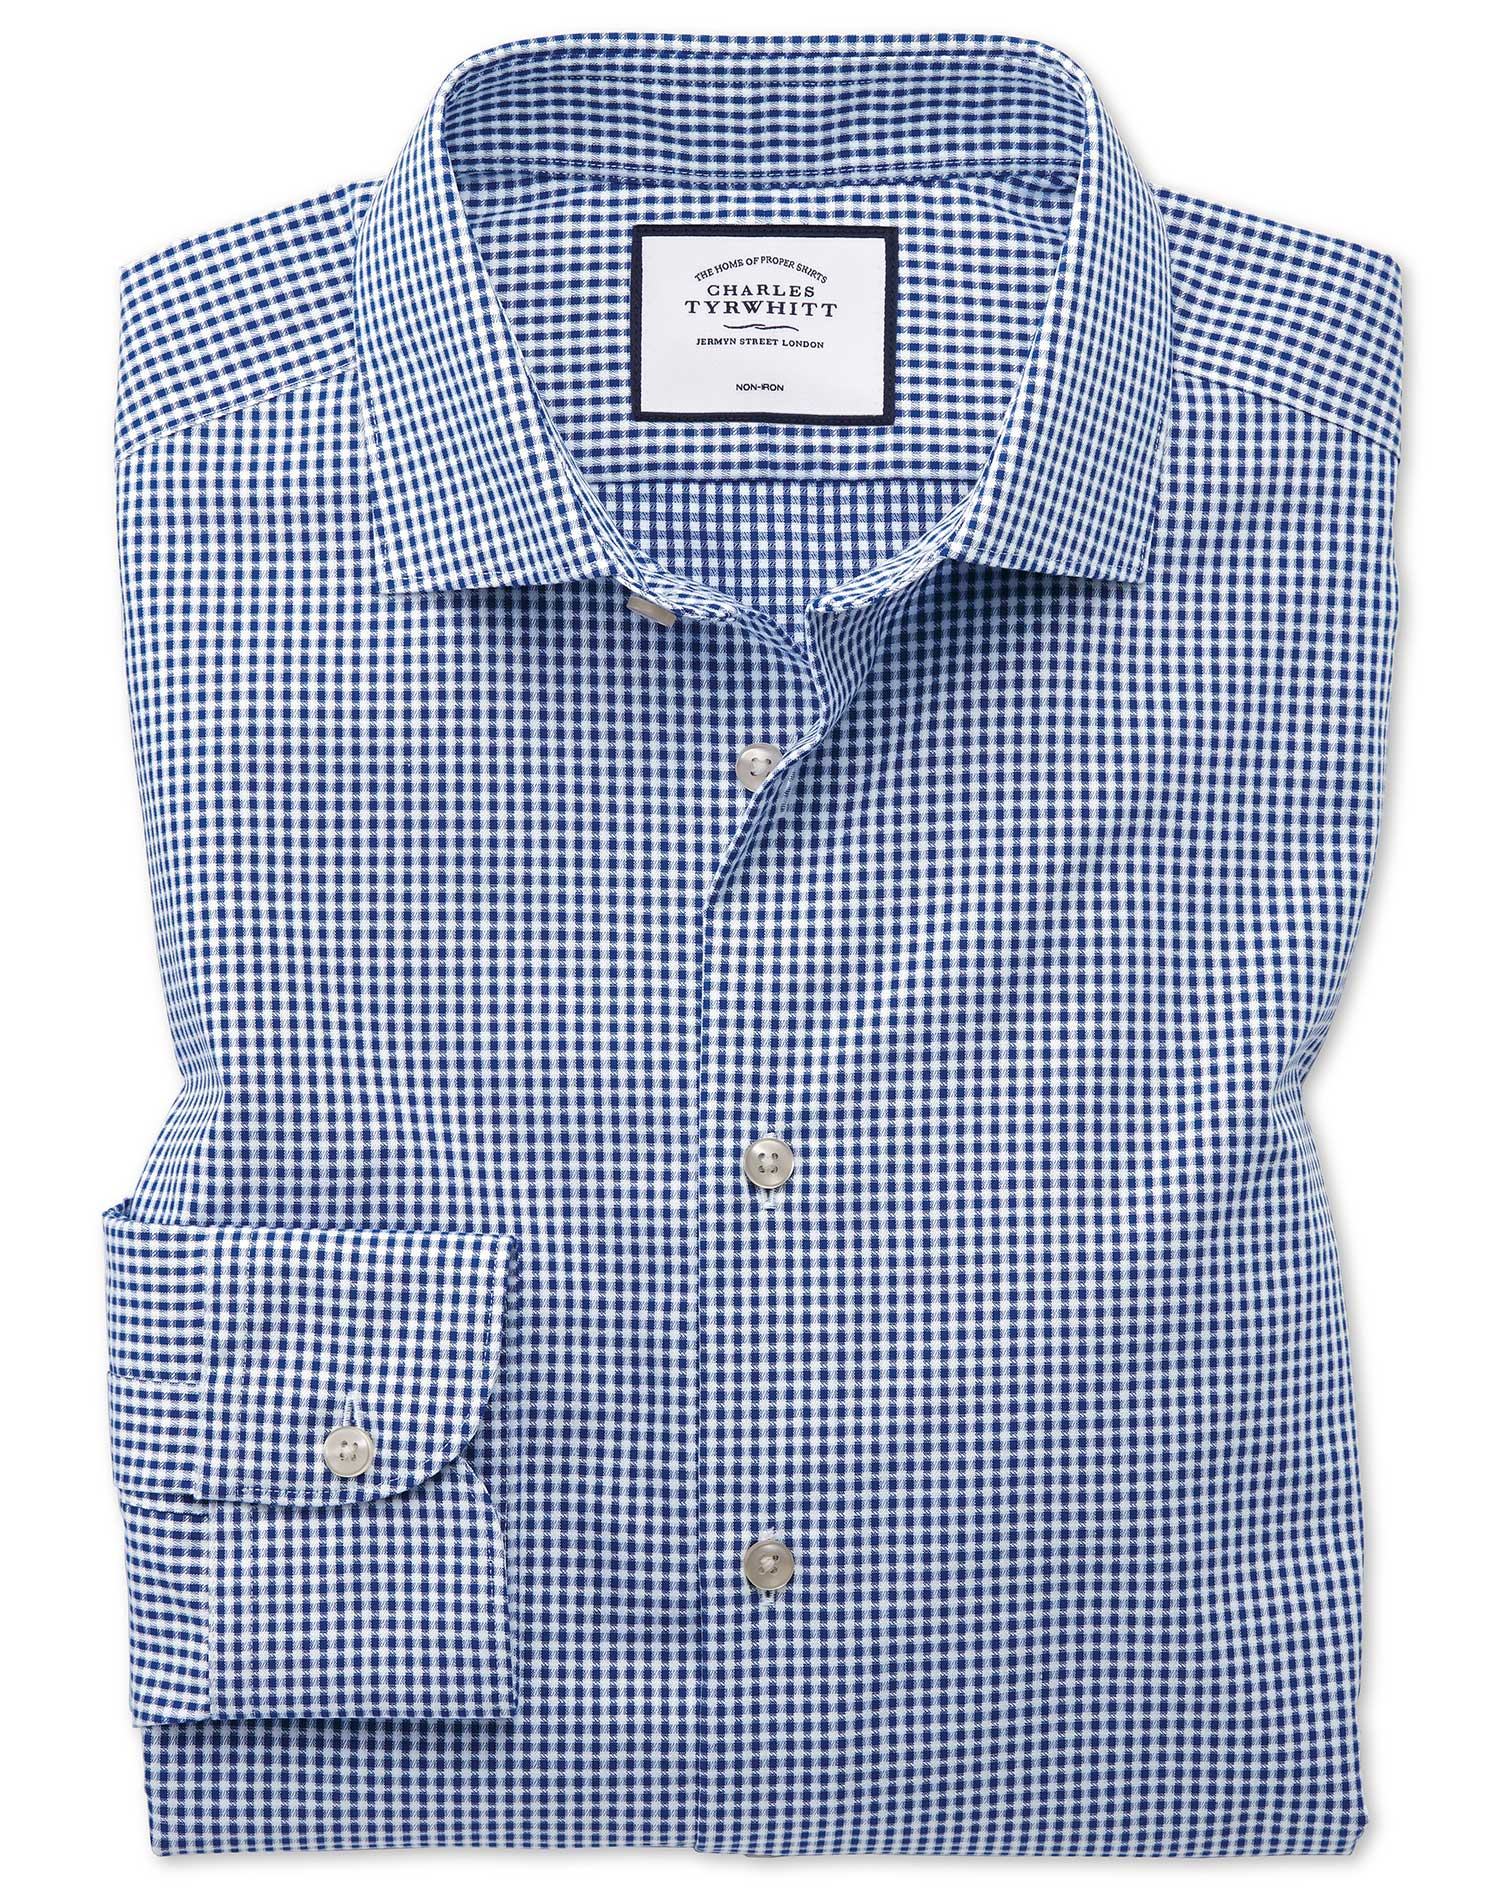 Slim Fit Business Casual Non-Iron Square Texture Navy Cotton Formal Shirt Single Cuff Size 17.5/36 b